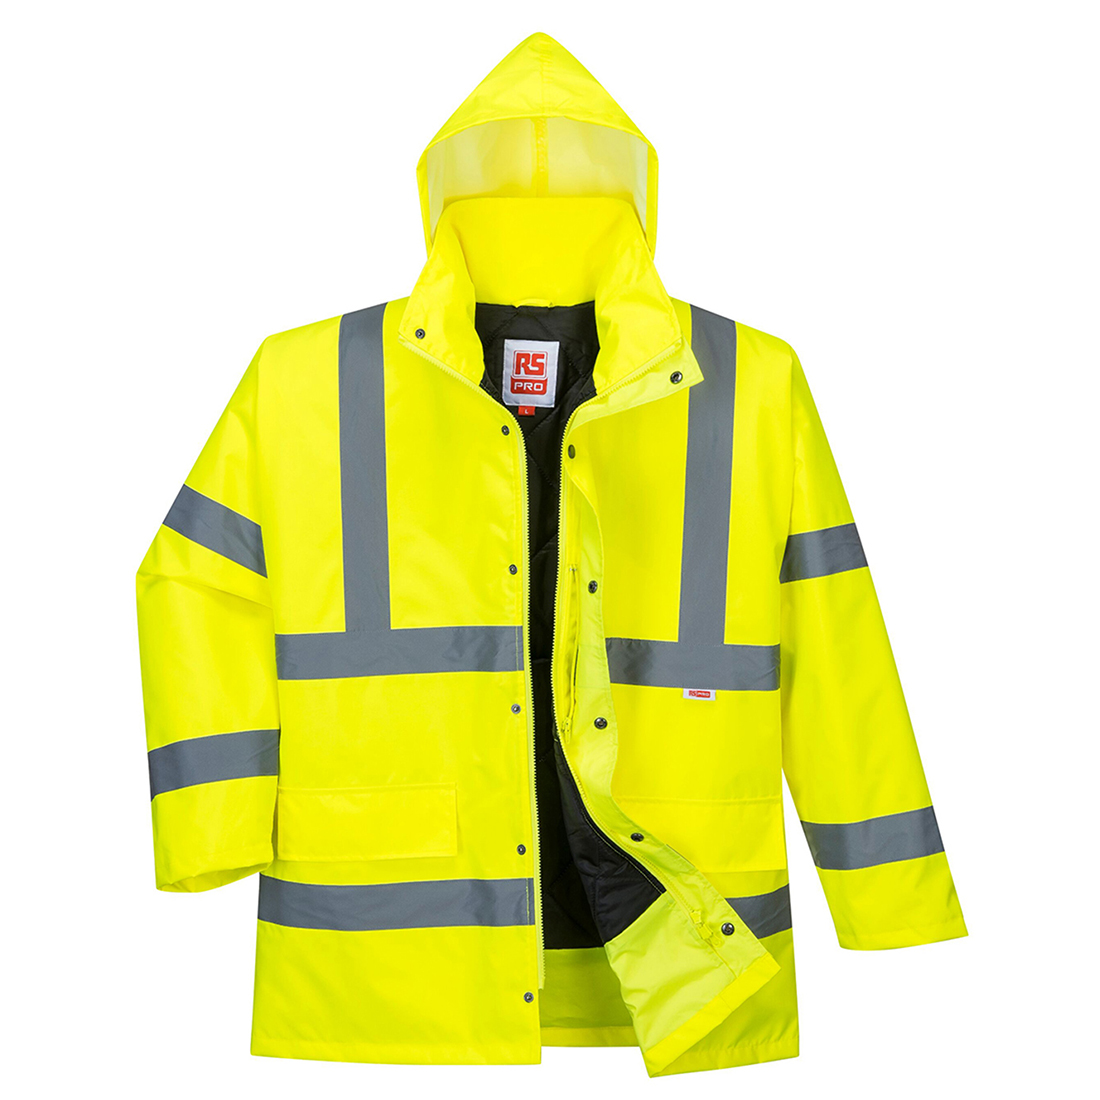 RS PRO Yellow Unisex Hi Vis Jacket, XXL